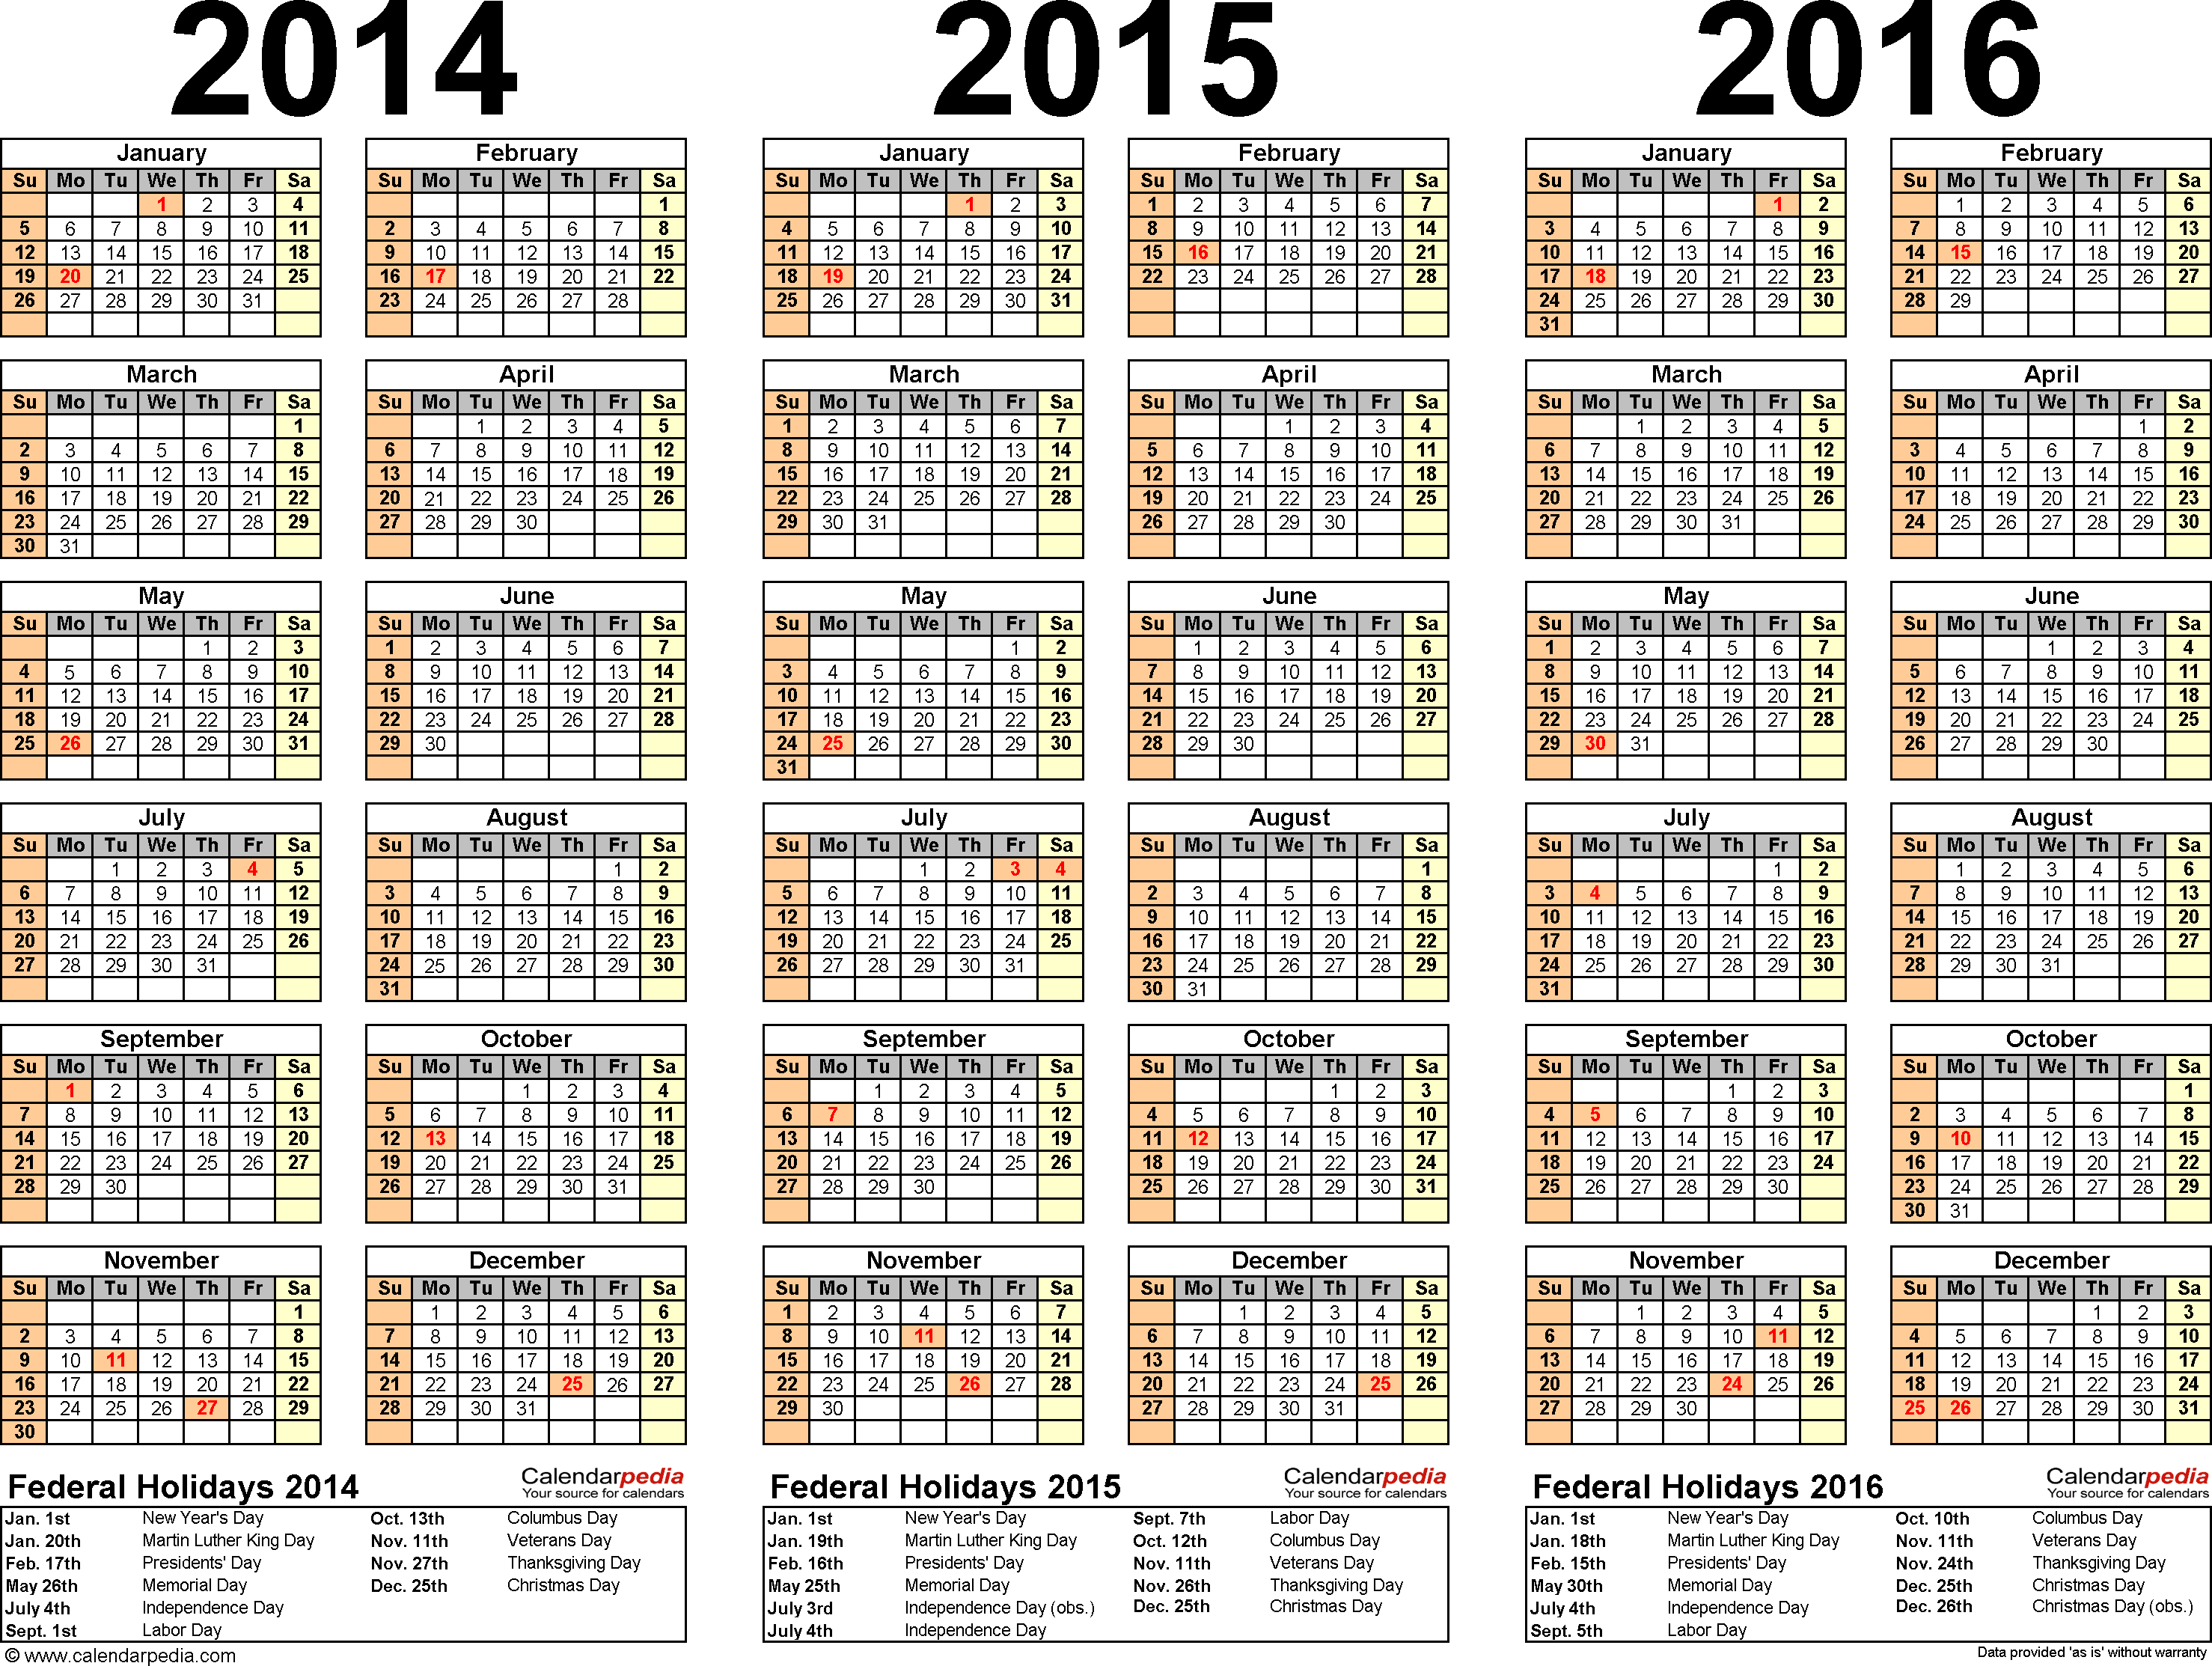 Template 5: Word template for three year calendar 2014/2015/2016 (landscape orientation, 1 page)